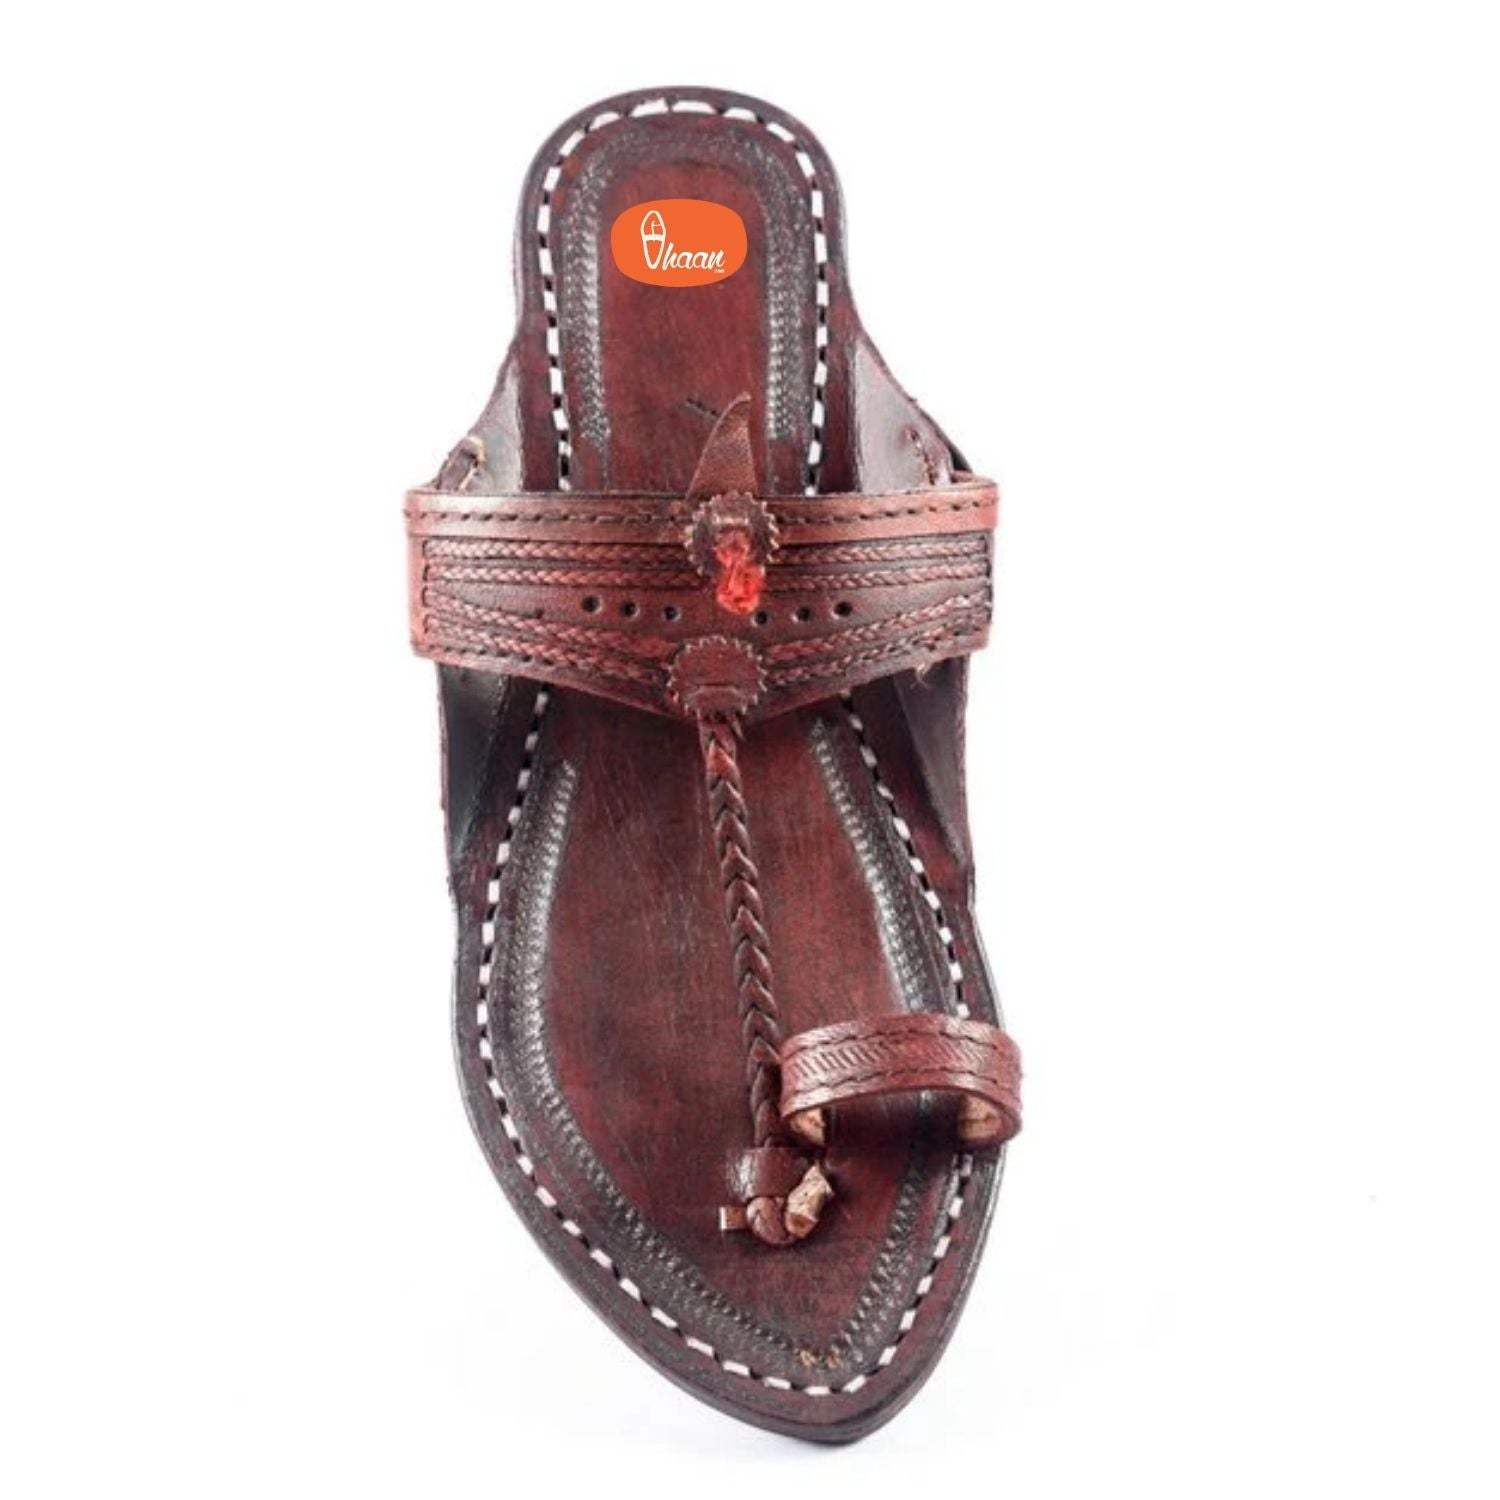 Red Color Pointed Shape Red Gonda Veni Belt with punching Kolhapuri chappal for women